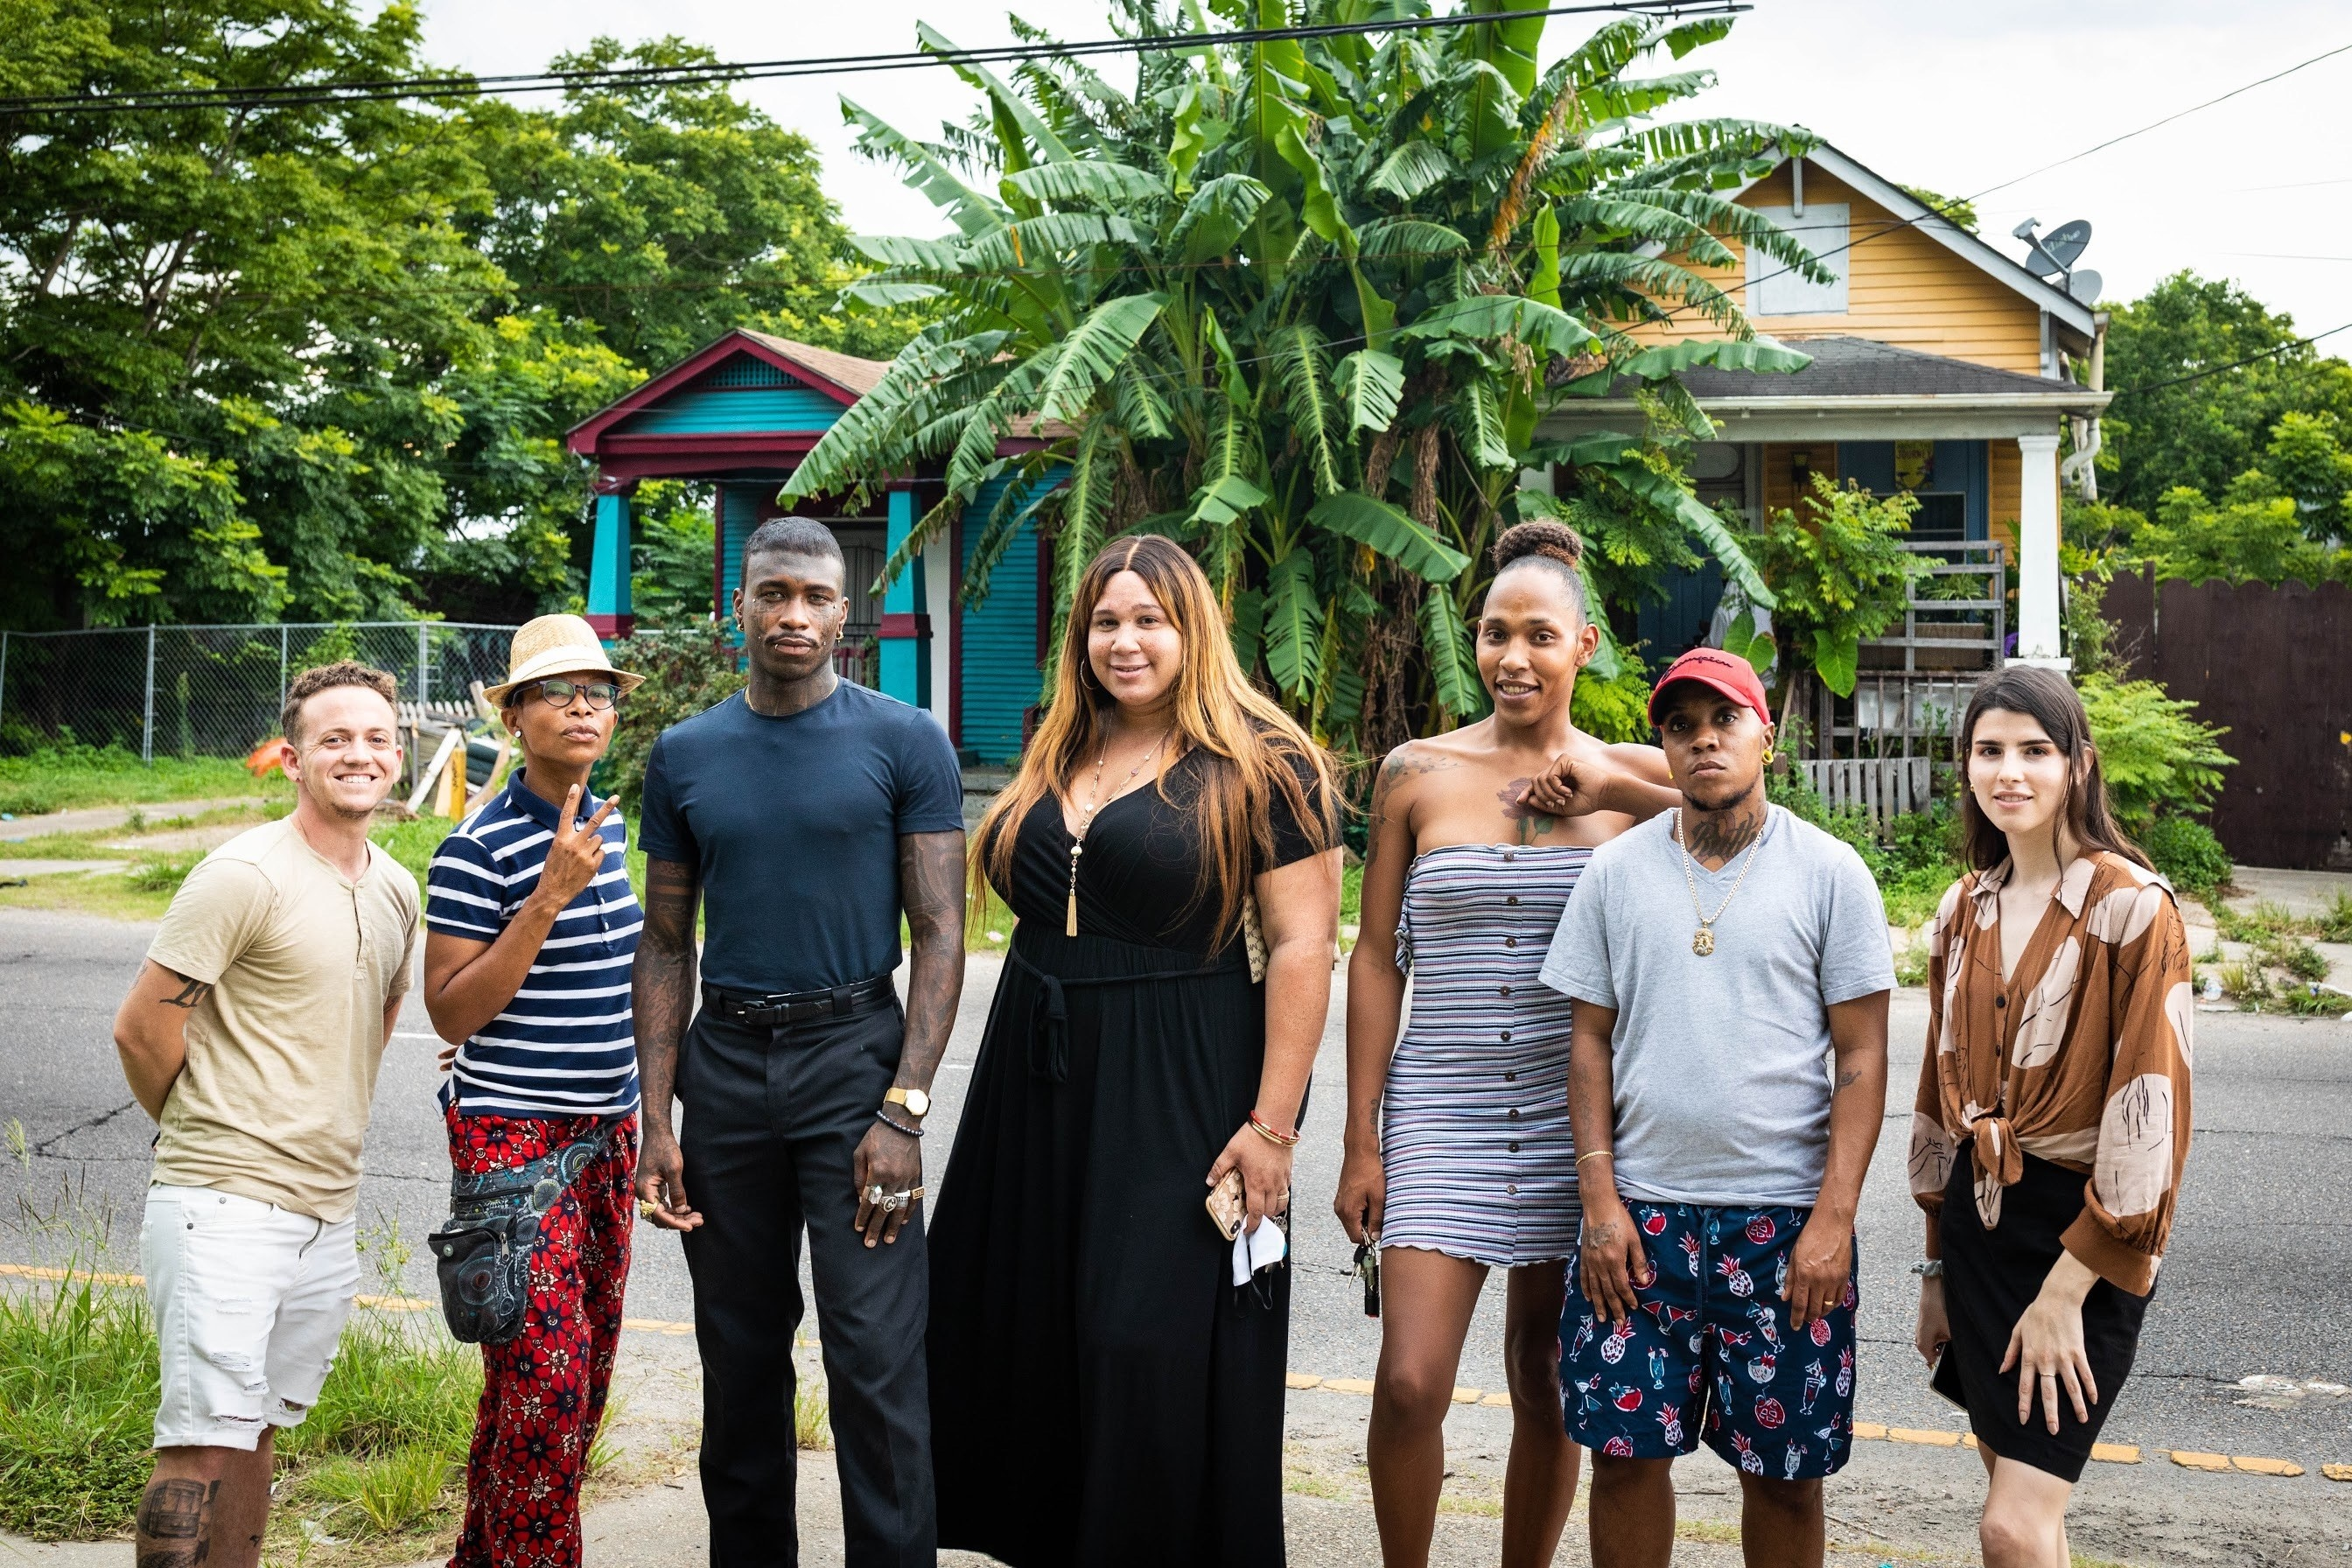 A group of activists leading efforts to create alternative housing for trans folks pose for a photo in New Orleans.